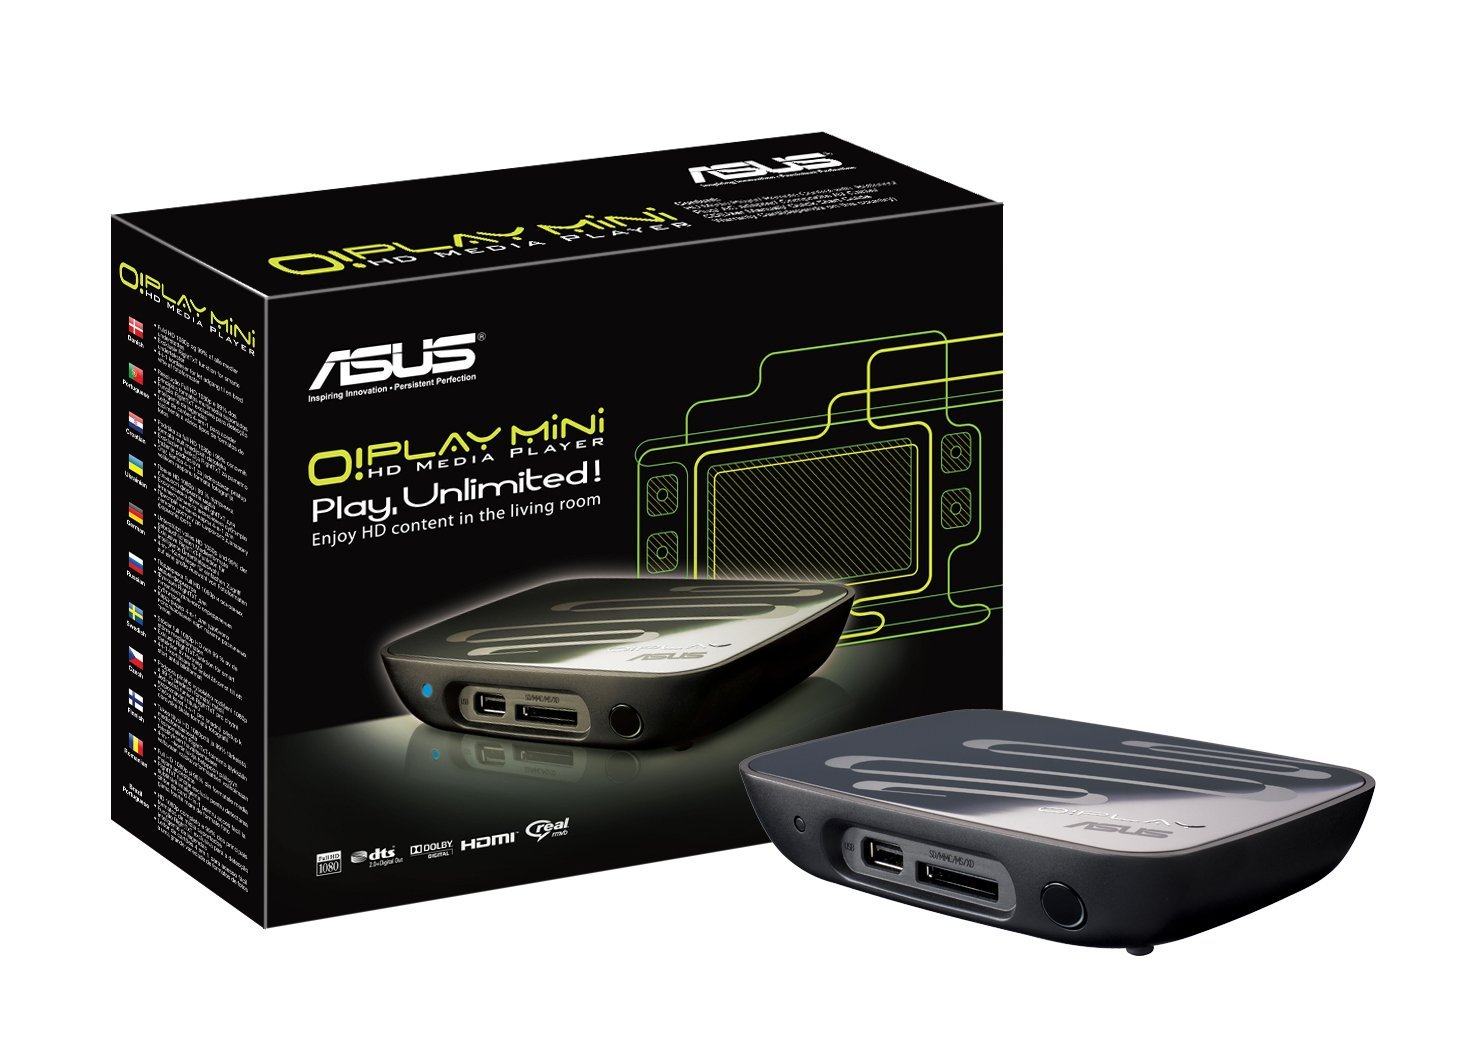 ASUS O!Play MINI - Compact full HD, 7.1 Channel audio multi-format living room entertOPLAY_MINI/1A/NTSC/AS HDMI Interface